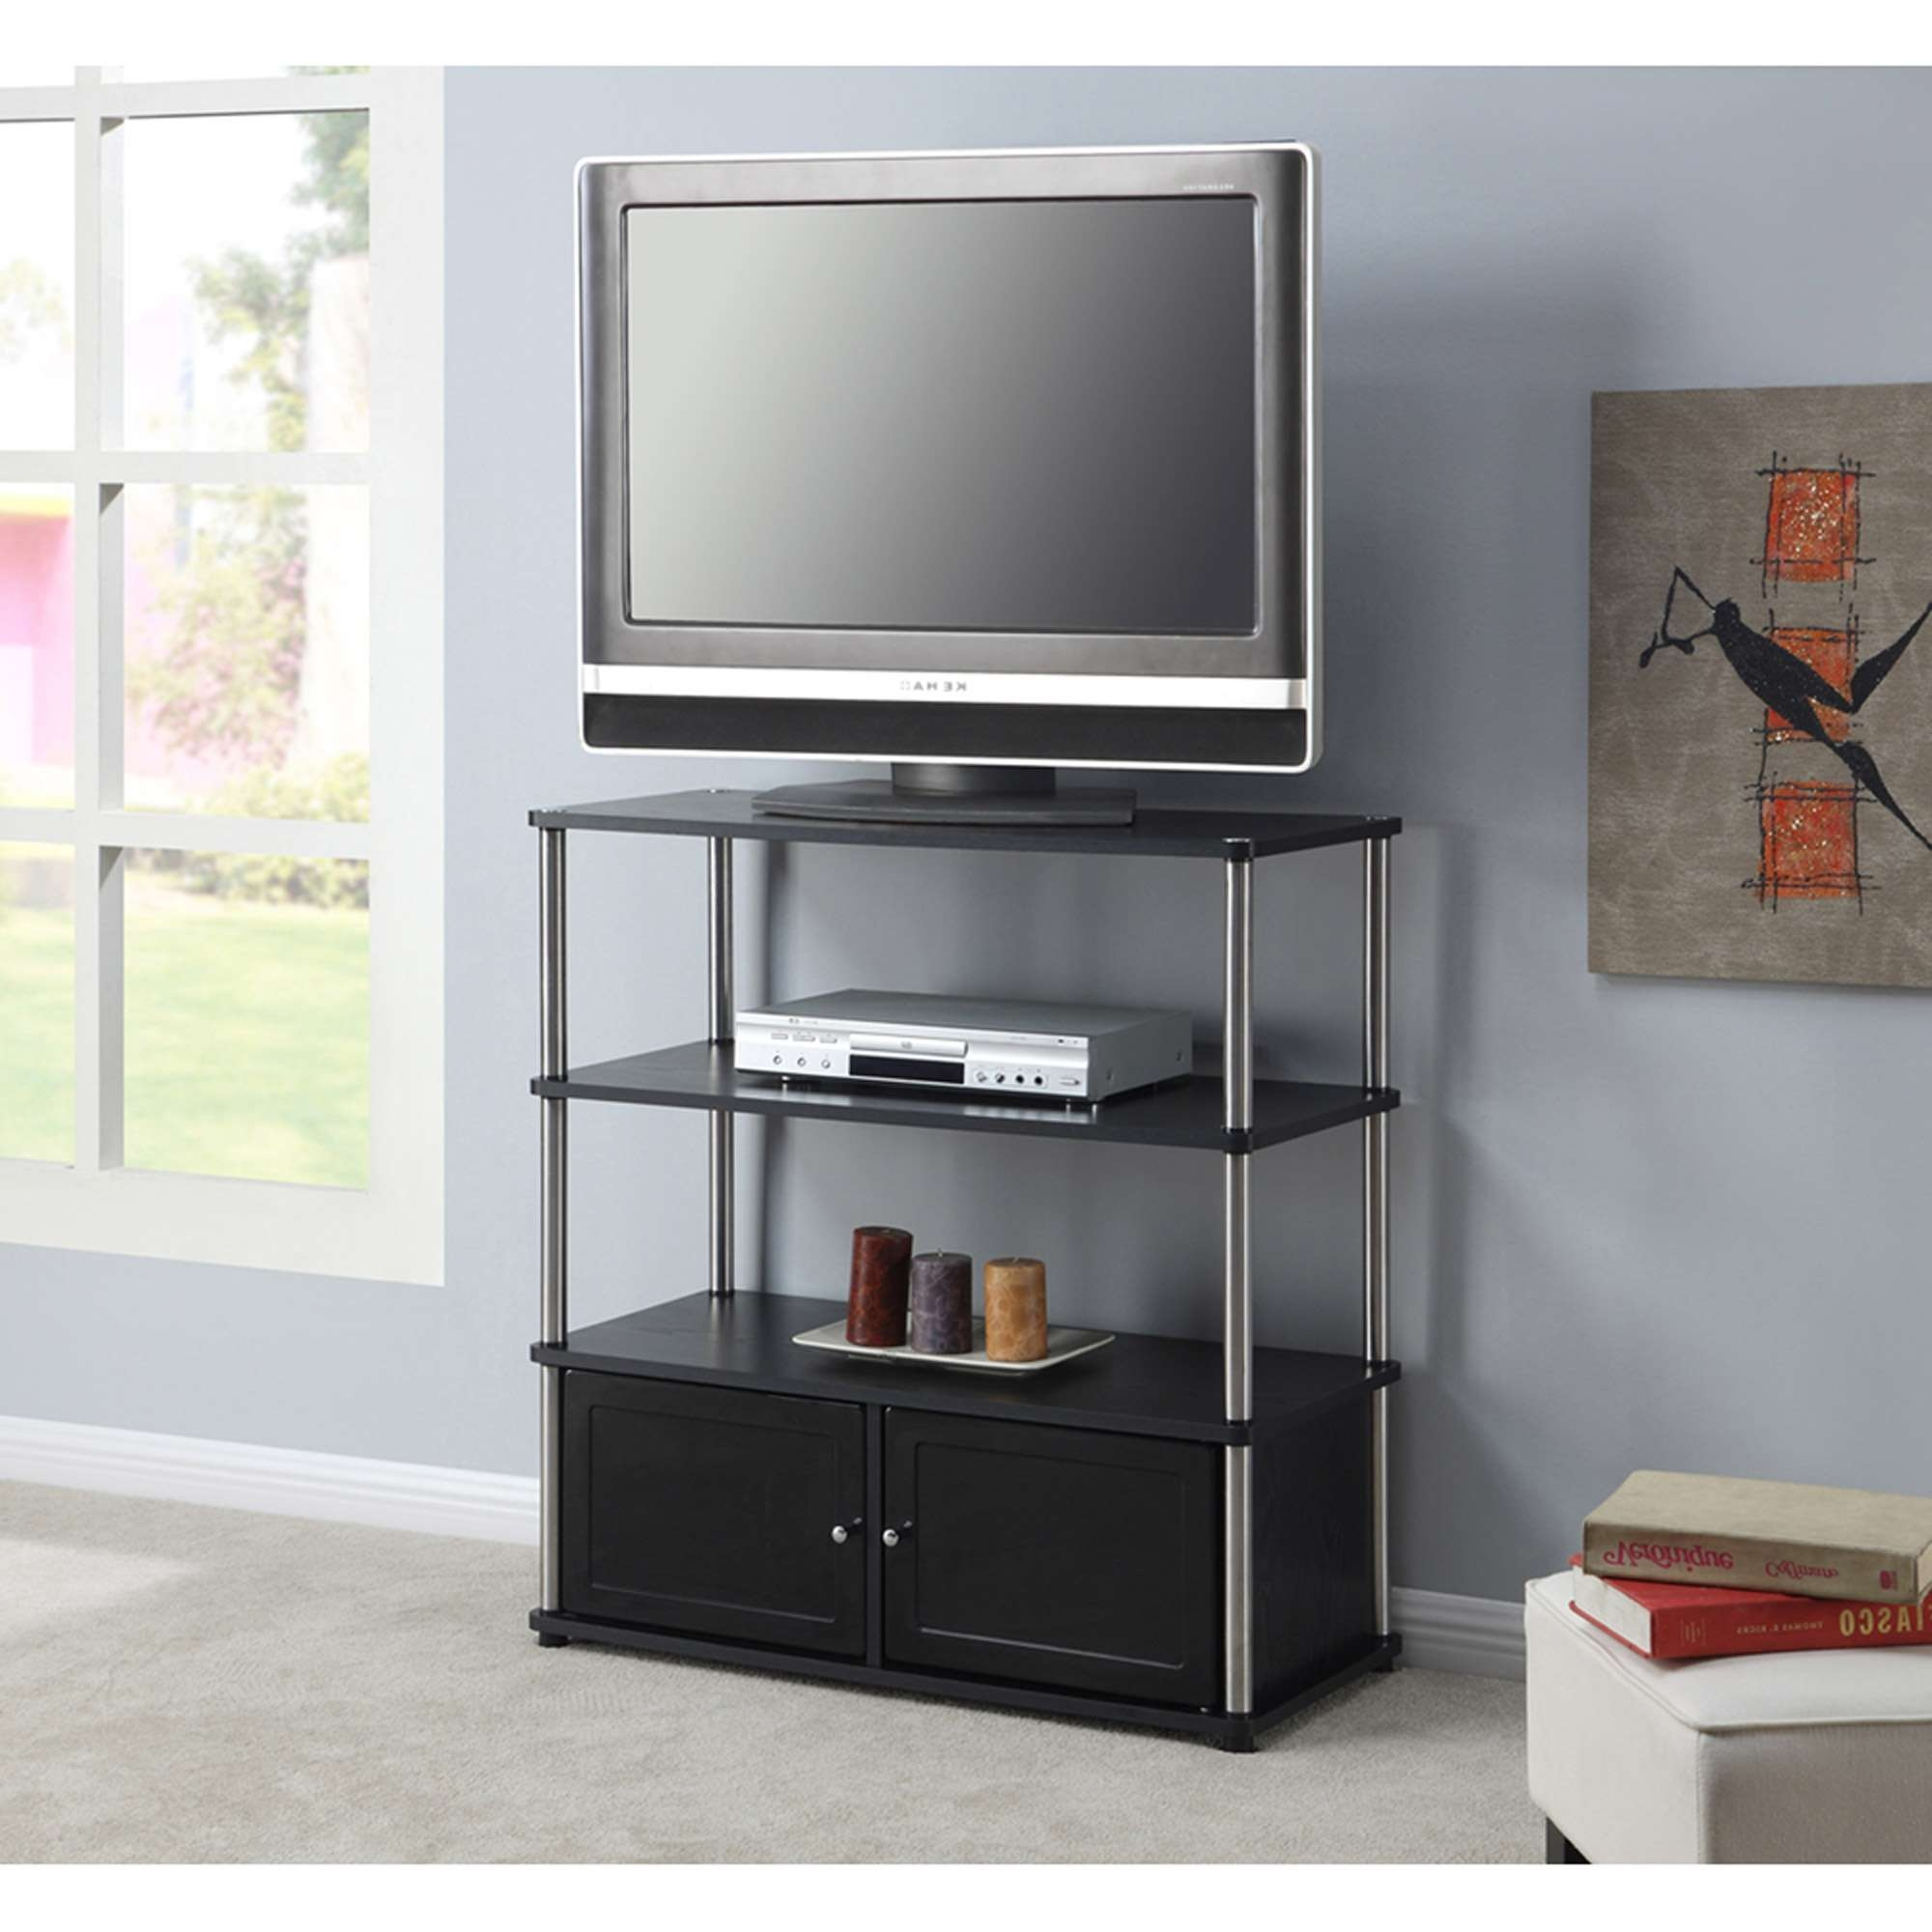 Tv Stand : Tall Narrow Tv Stands For Flat Screens And Standstall In Narrow Tv Stands For Flat Screens (View 11 of 15)